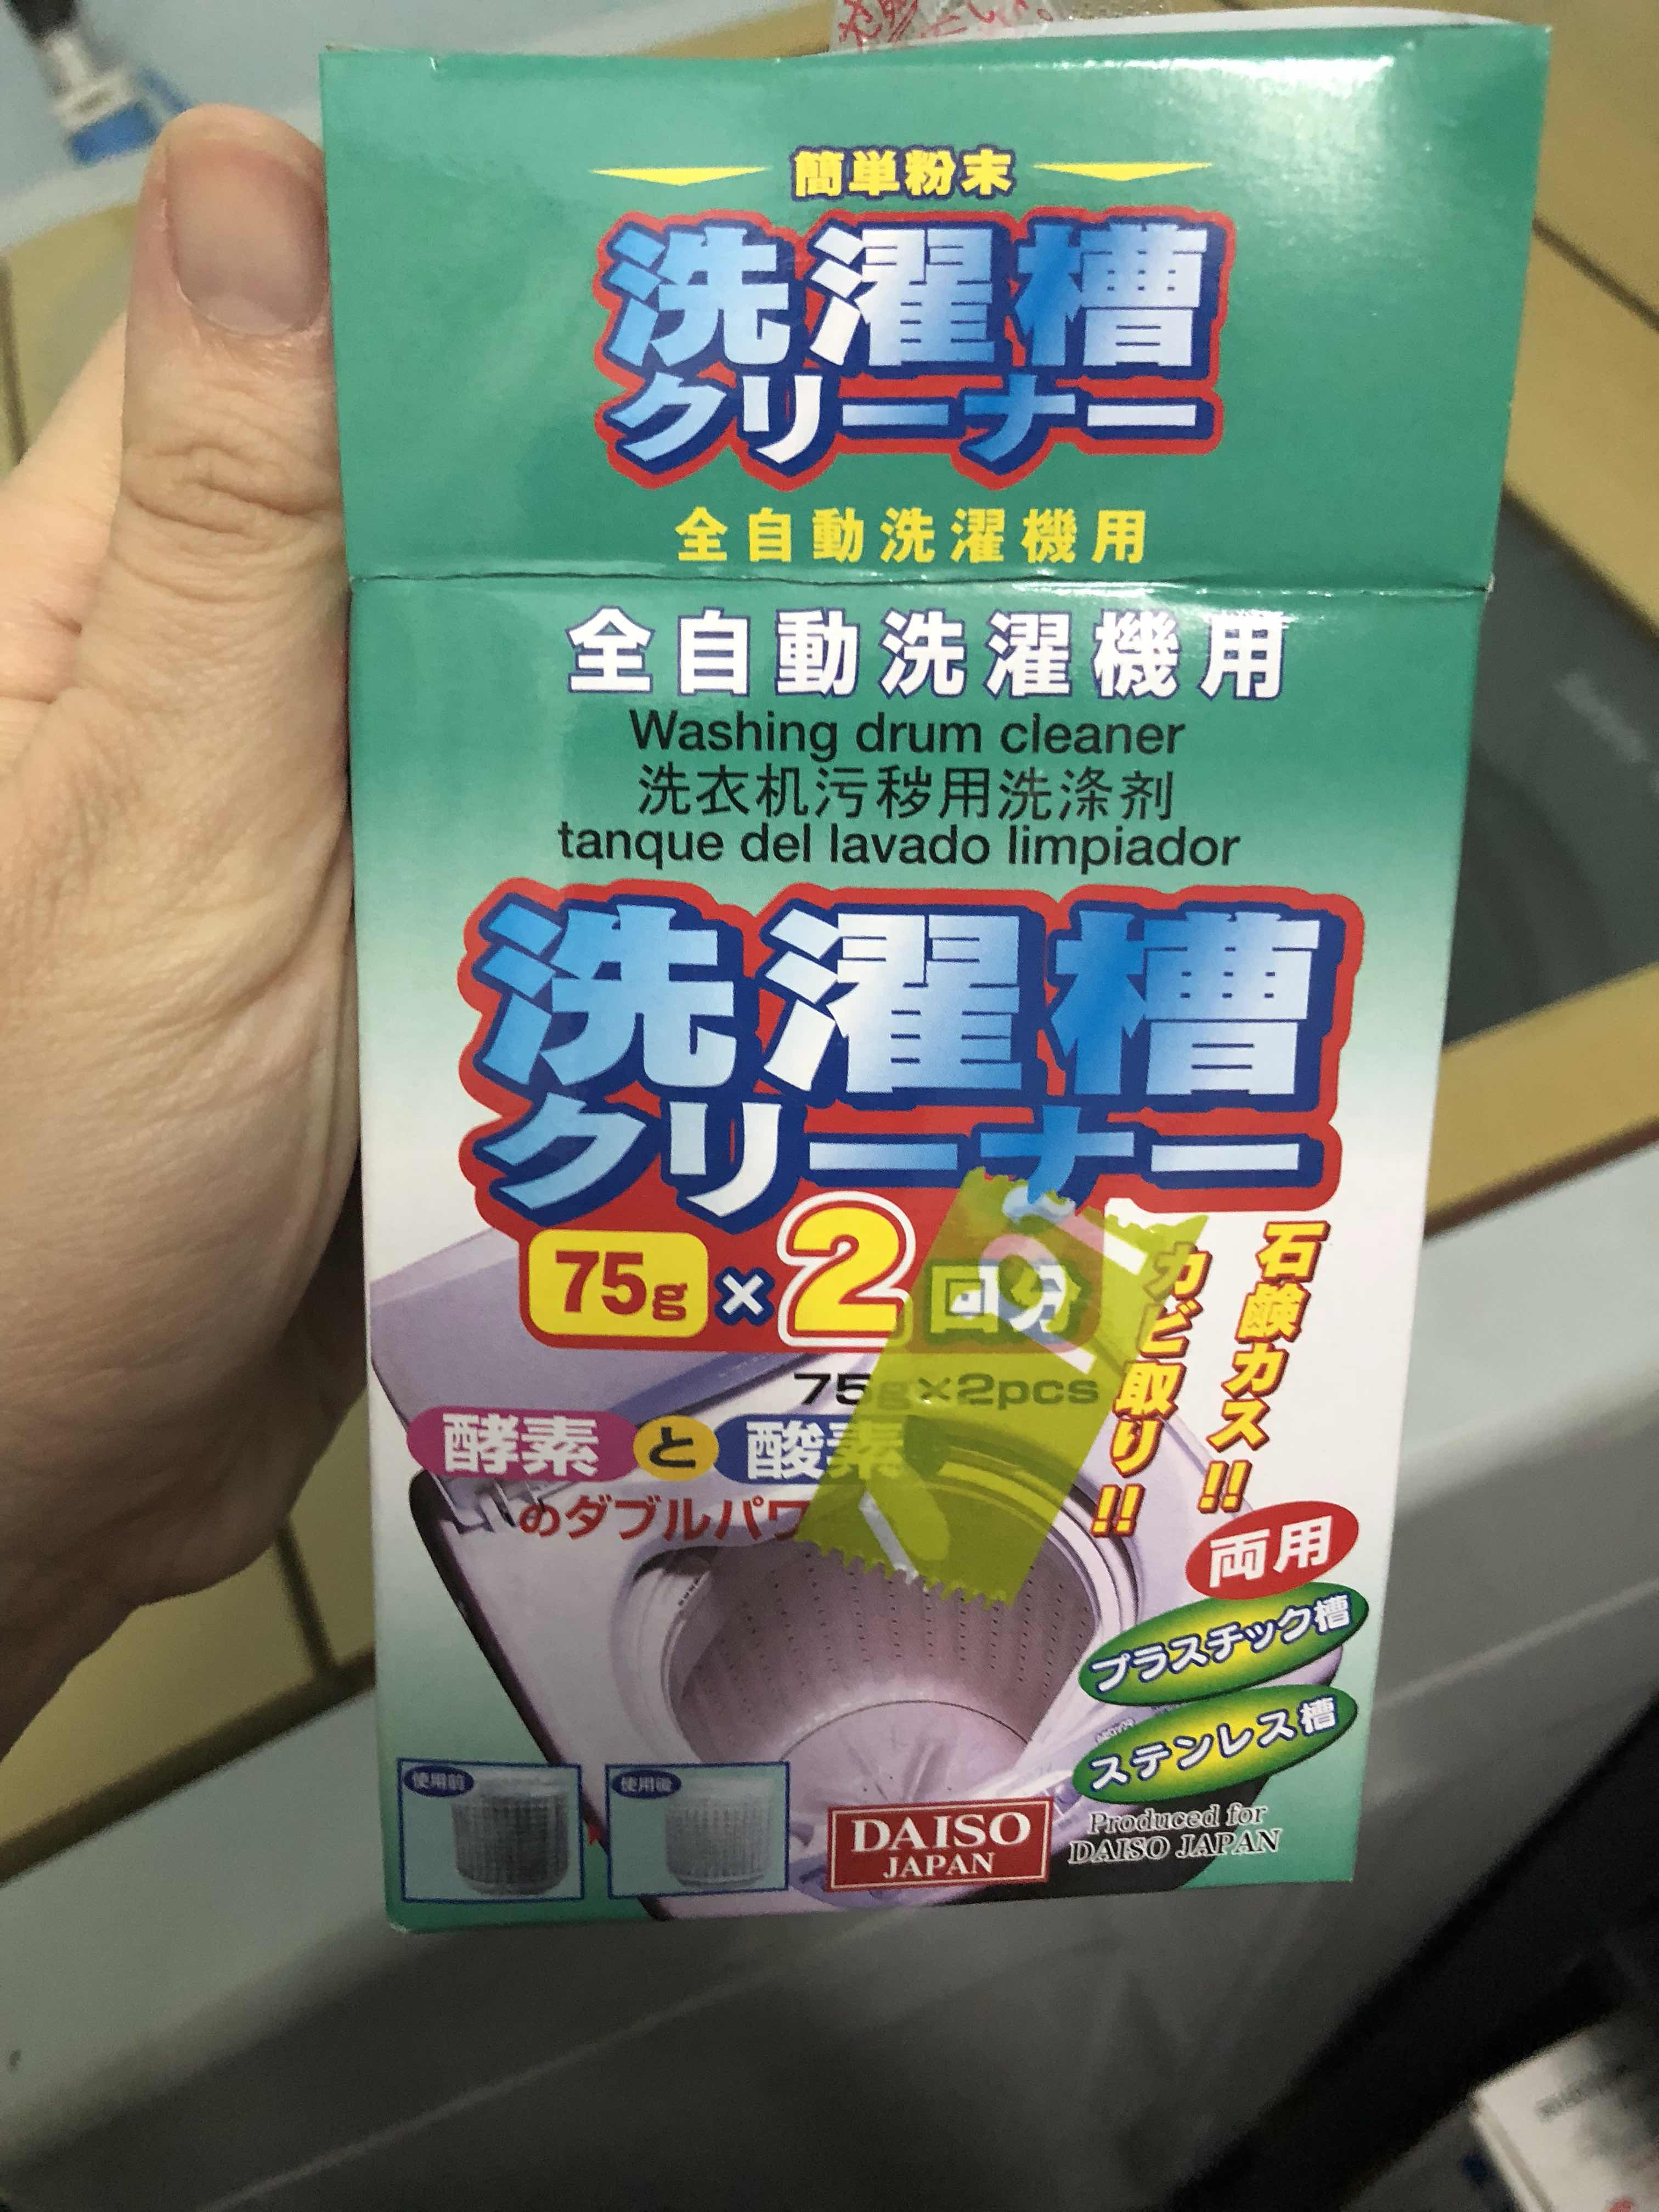 Daiso Washing Drum Cleaner and TIPS